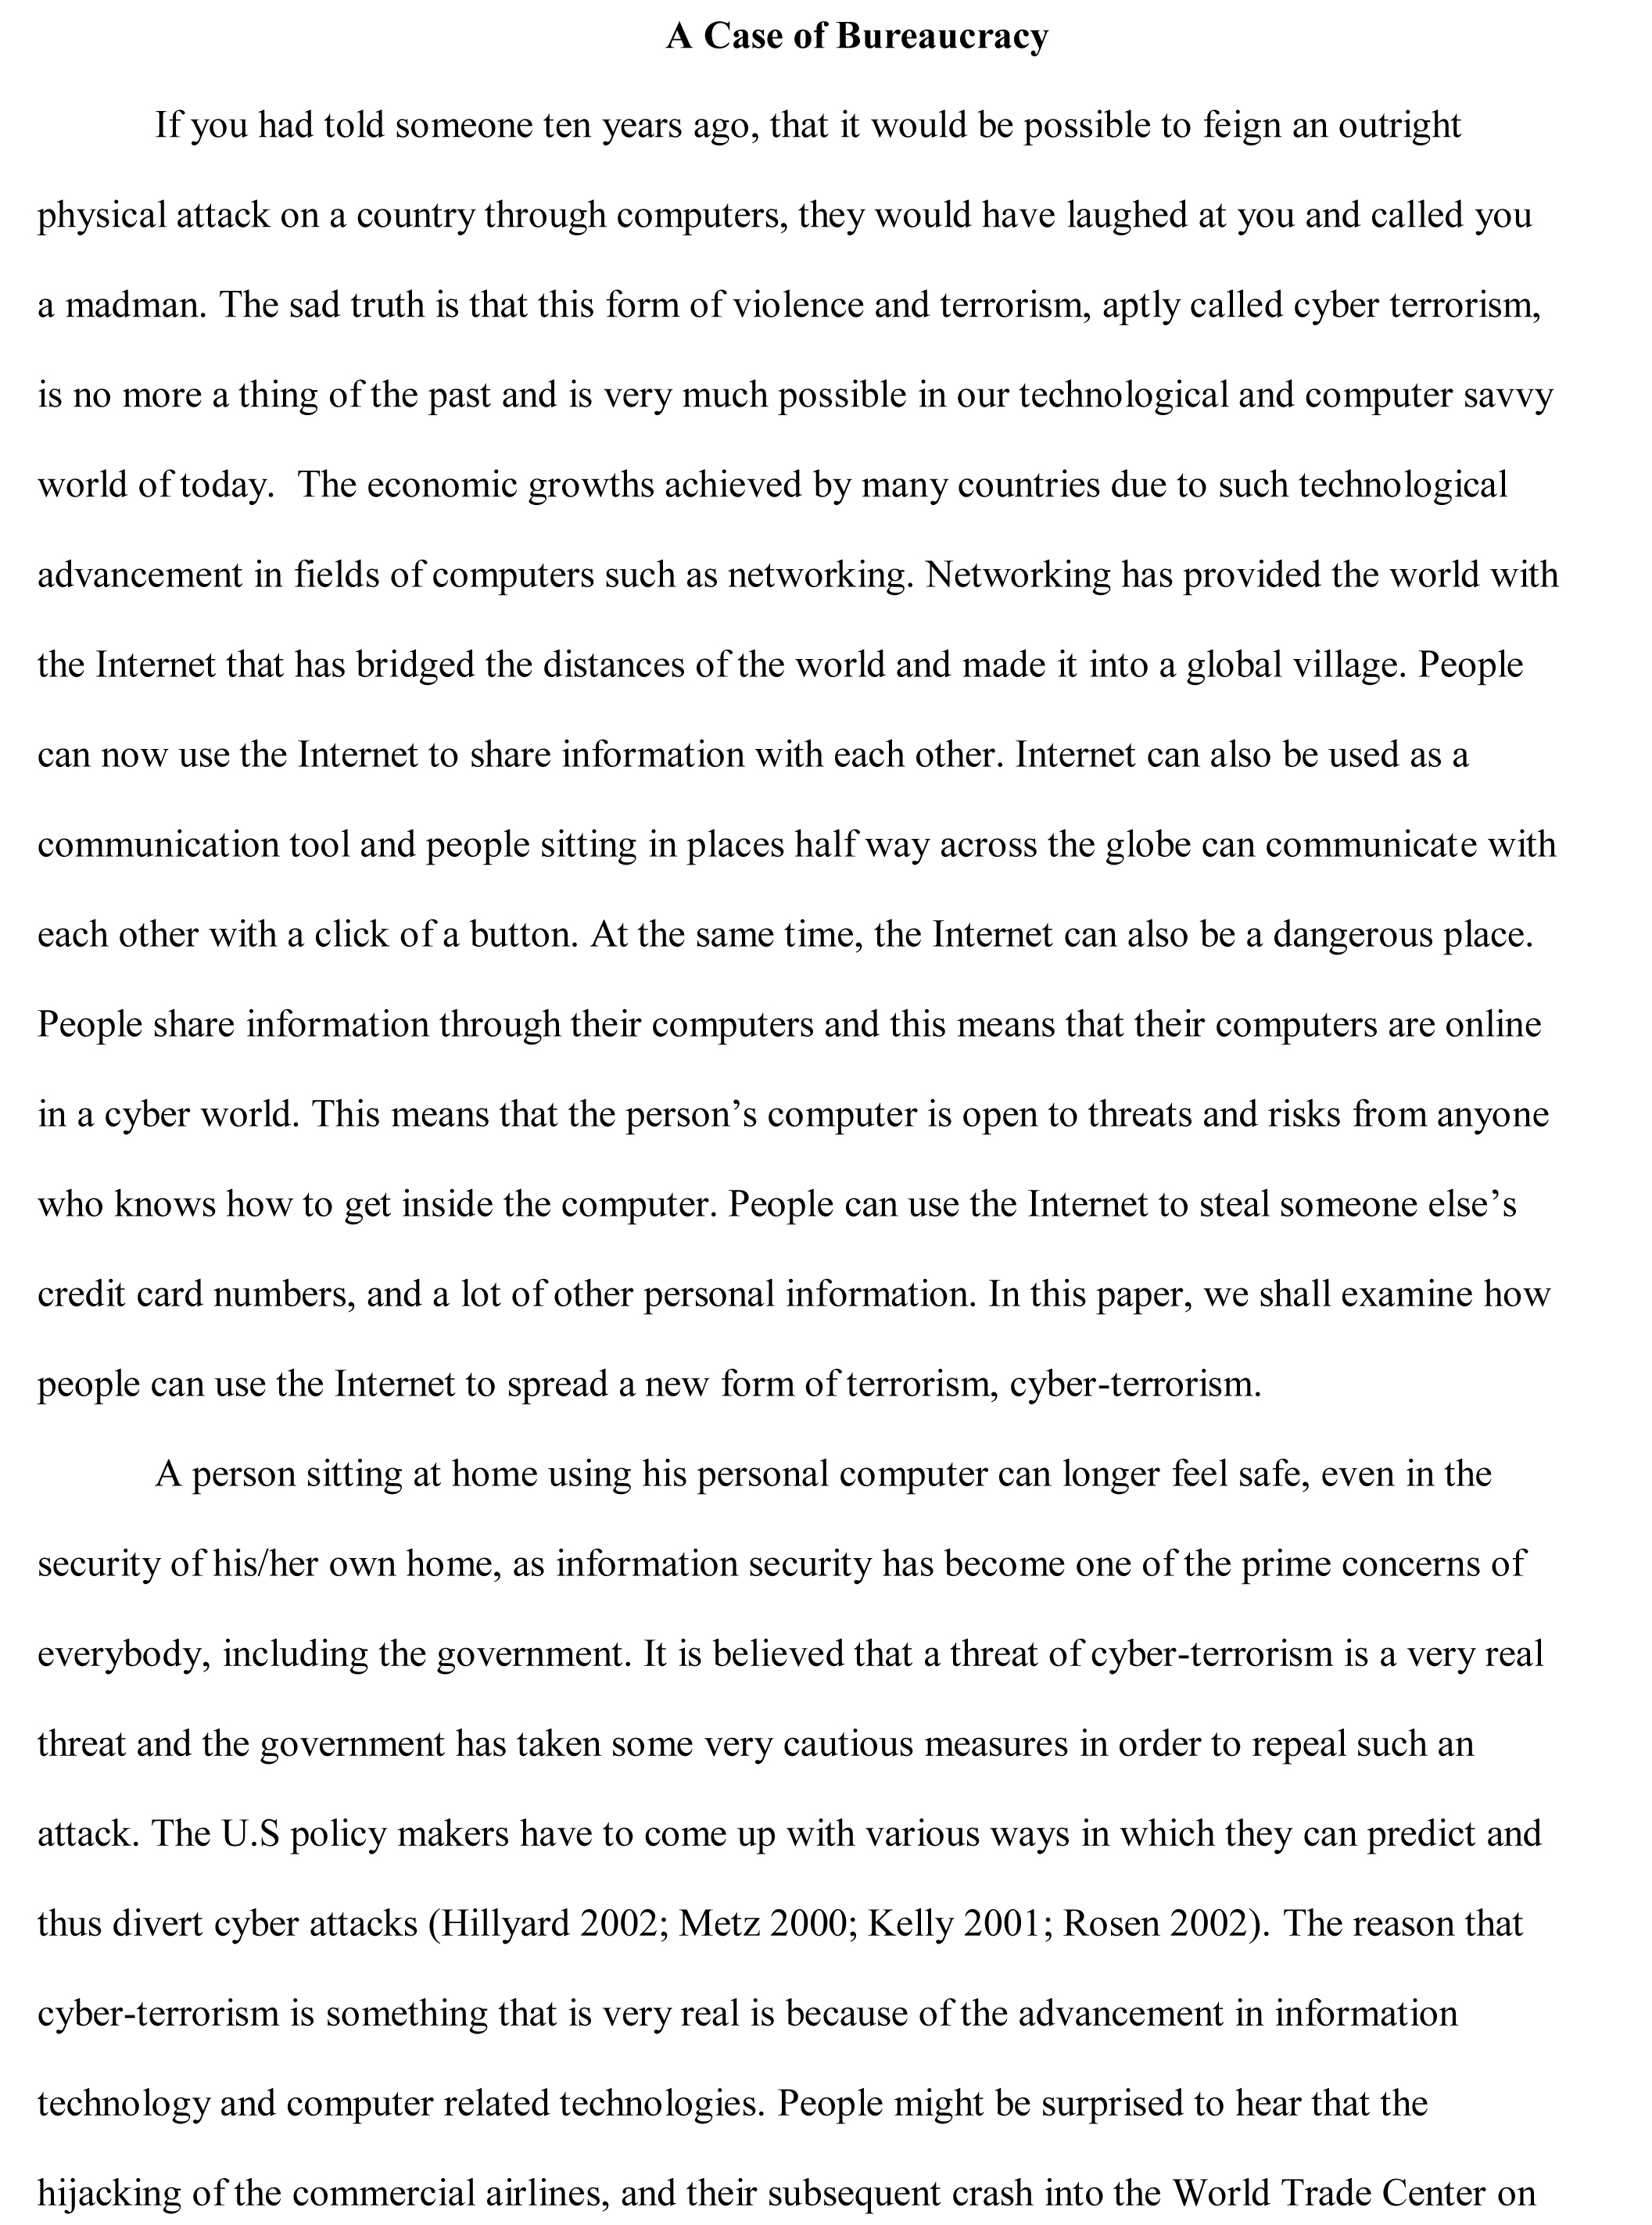 011 Essay Example In Spanish About School Rsearch Paper Free Unusual Full